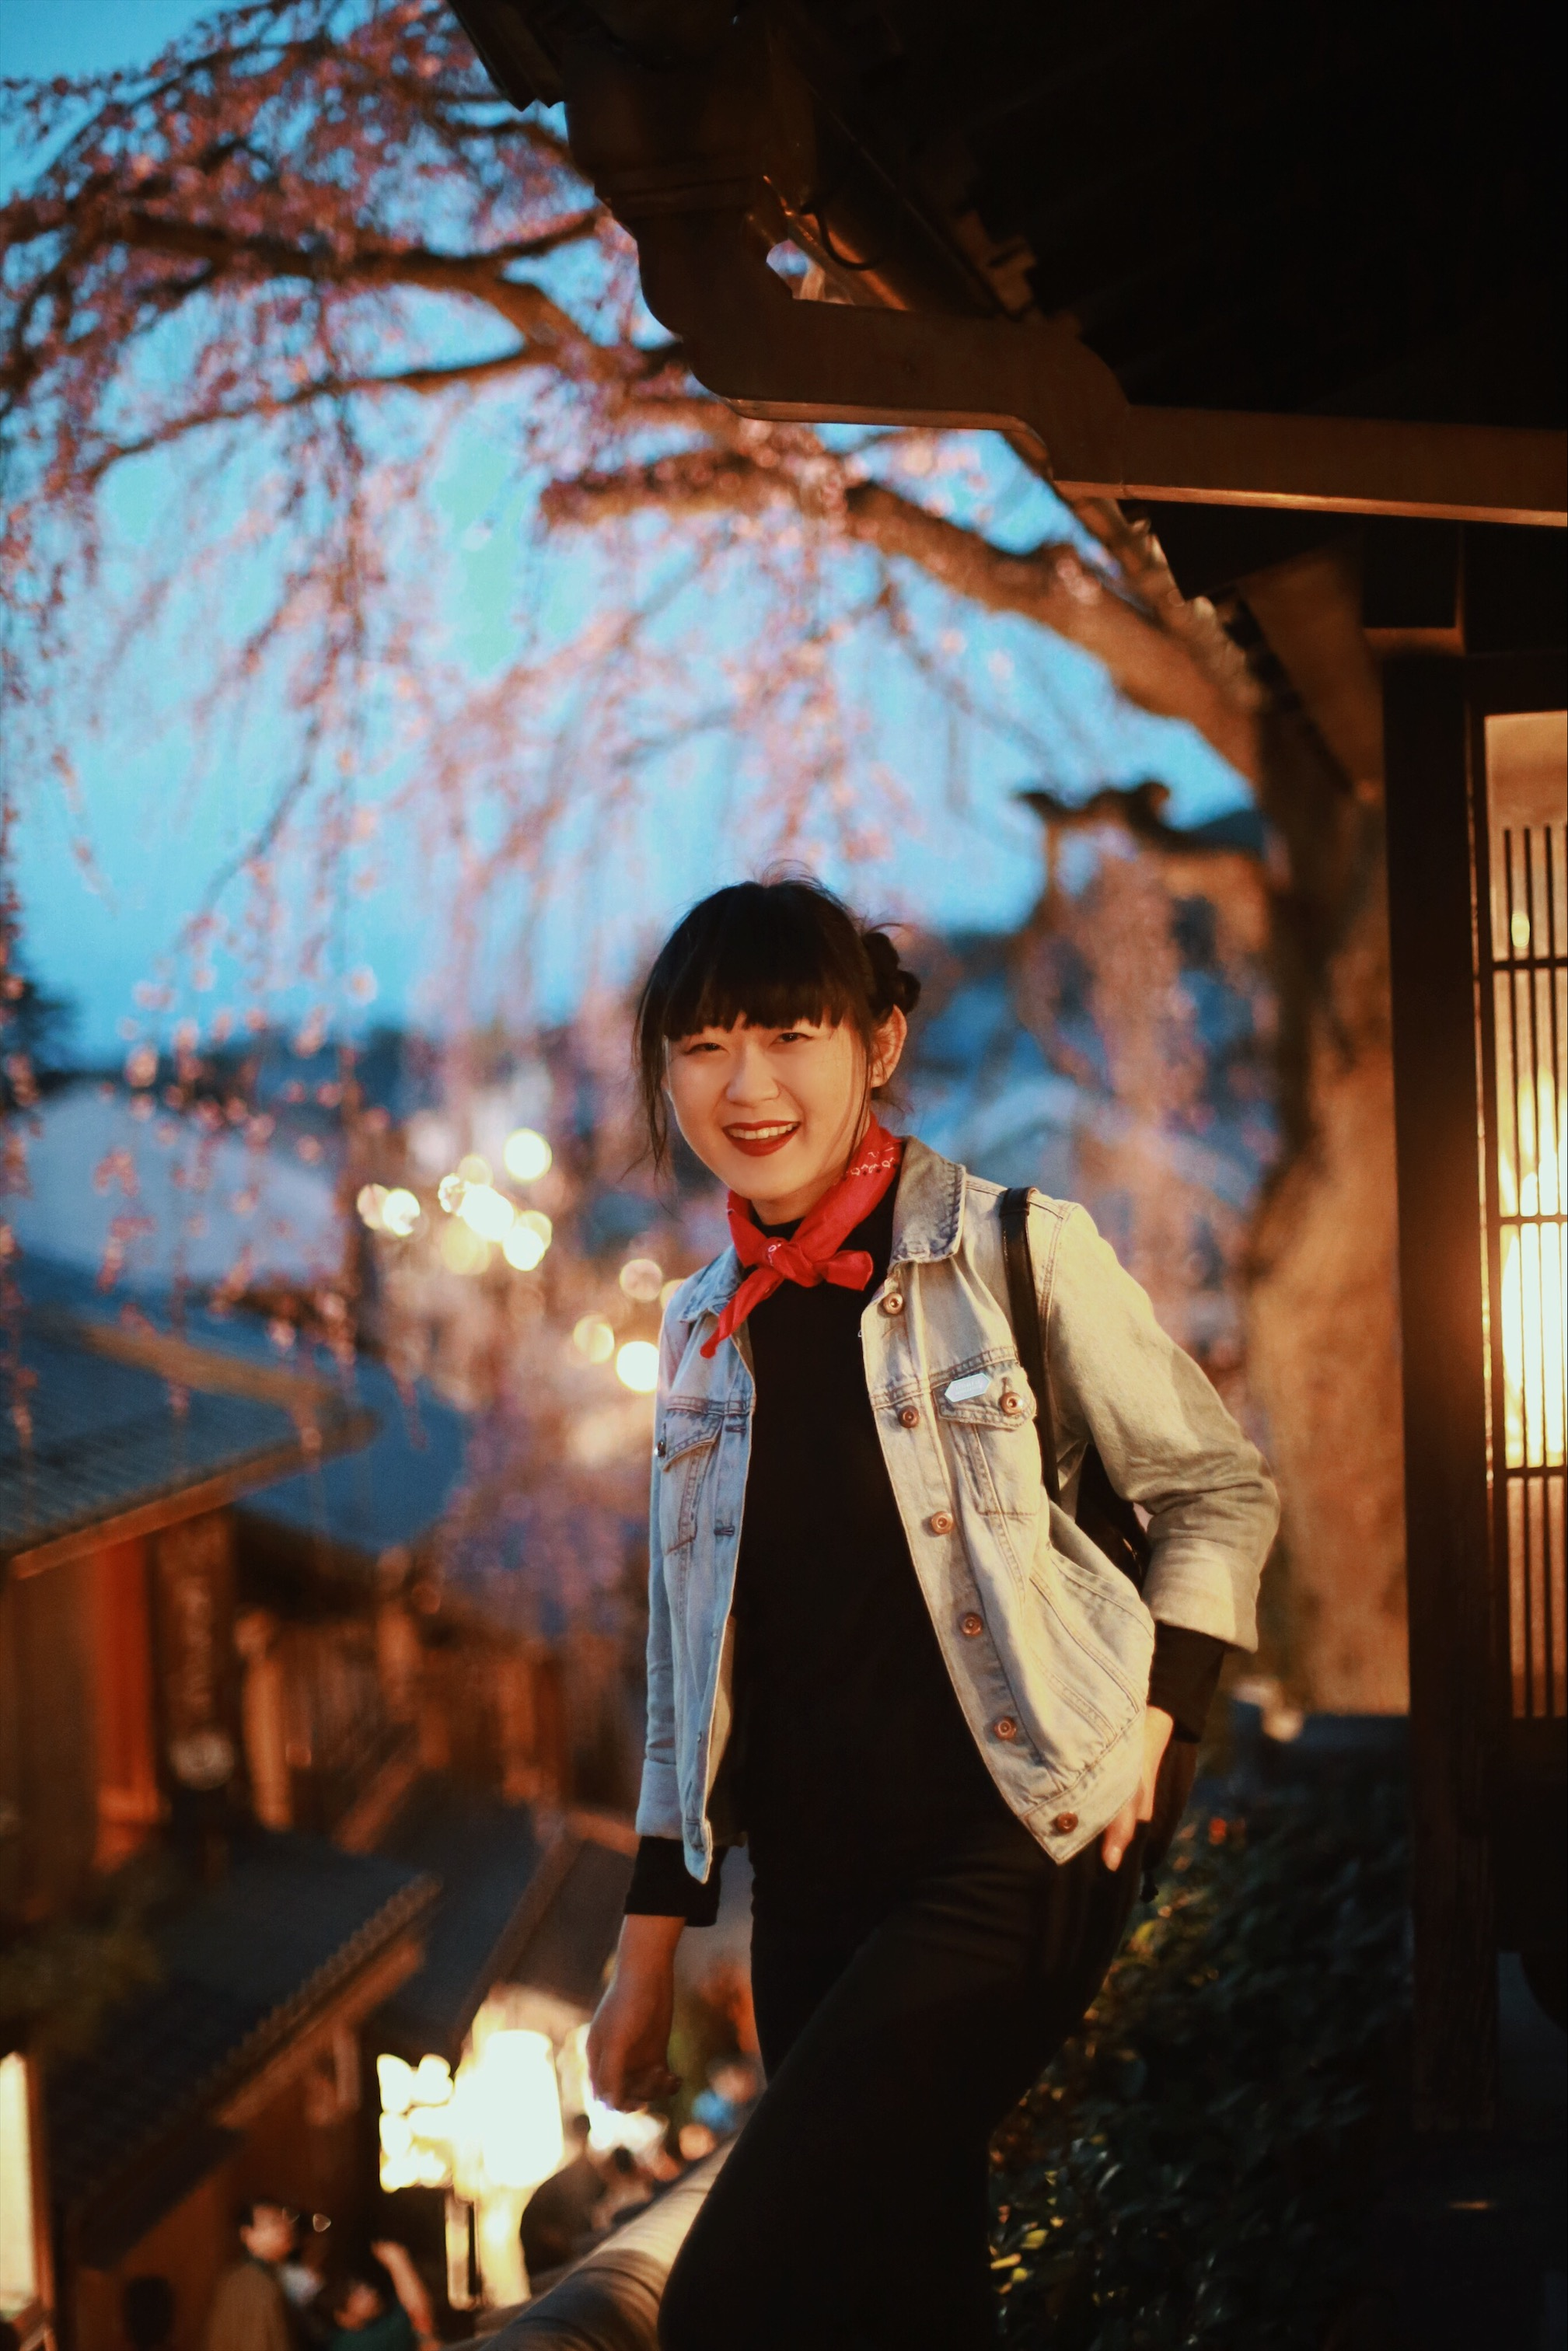 Jen poses by a tree almost in fully cherry blossom splendor overlooking the Ninen-zaka pedestrian street in Higashiyama.